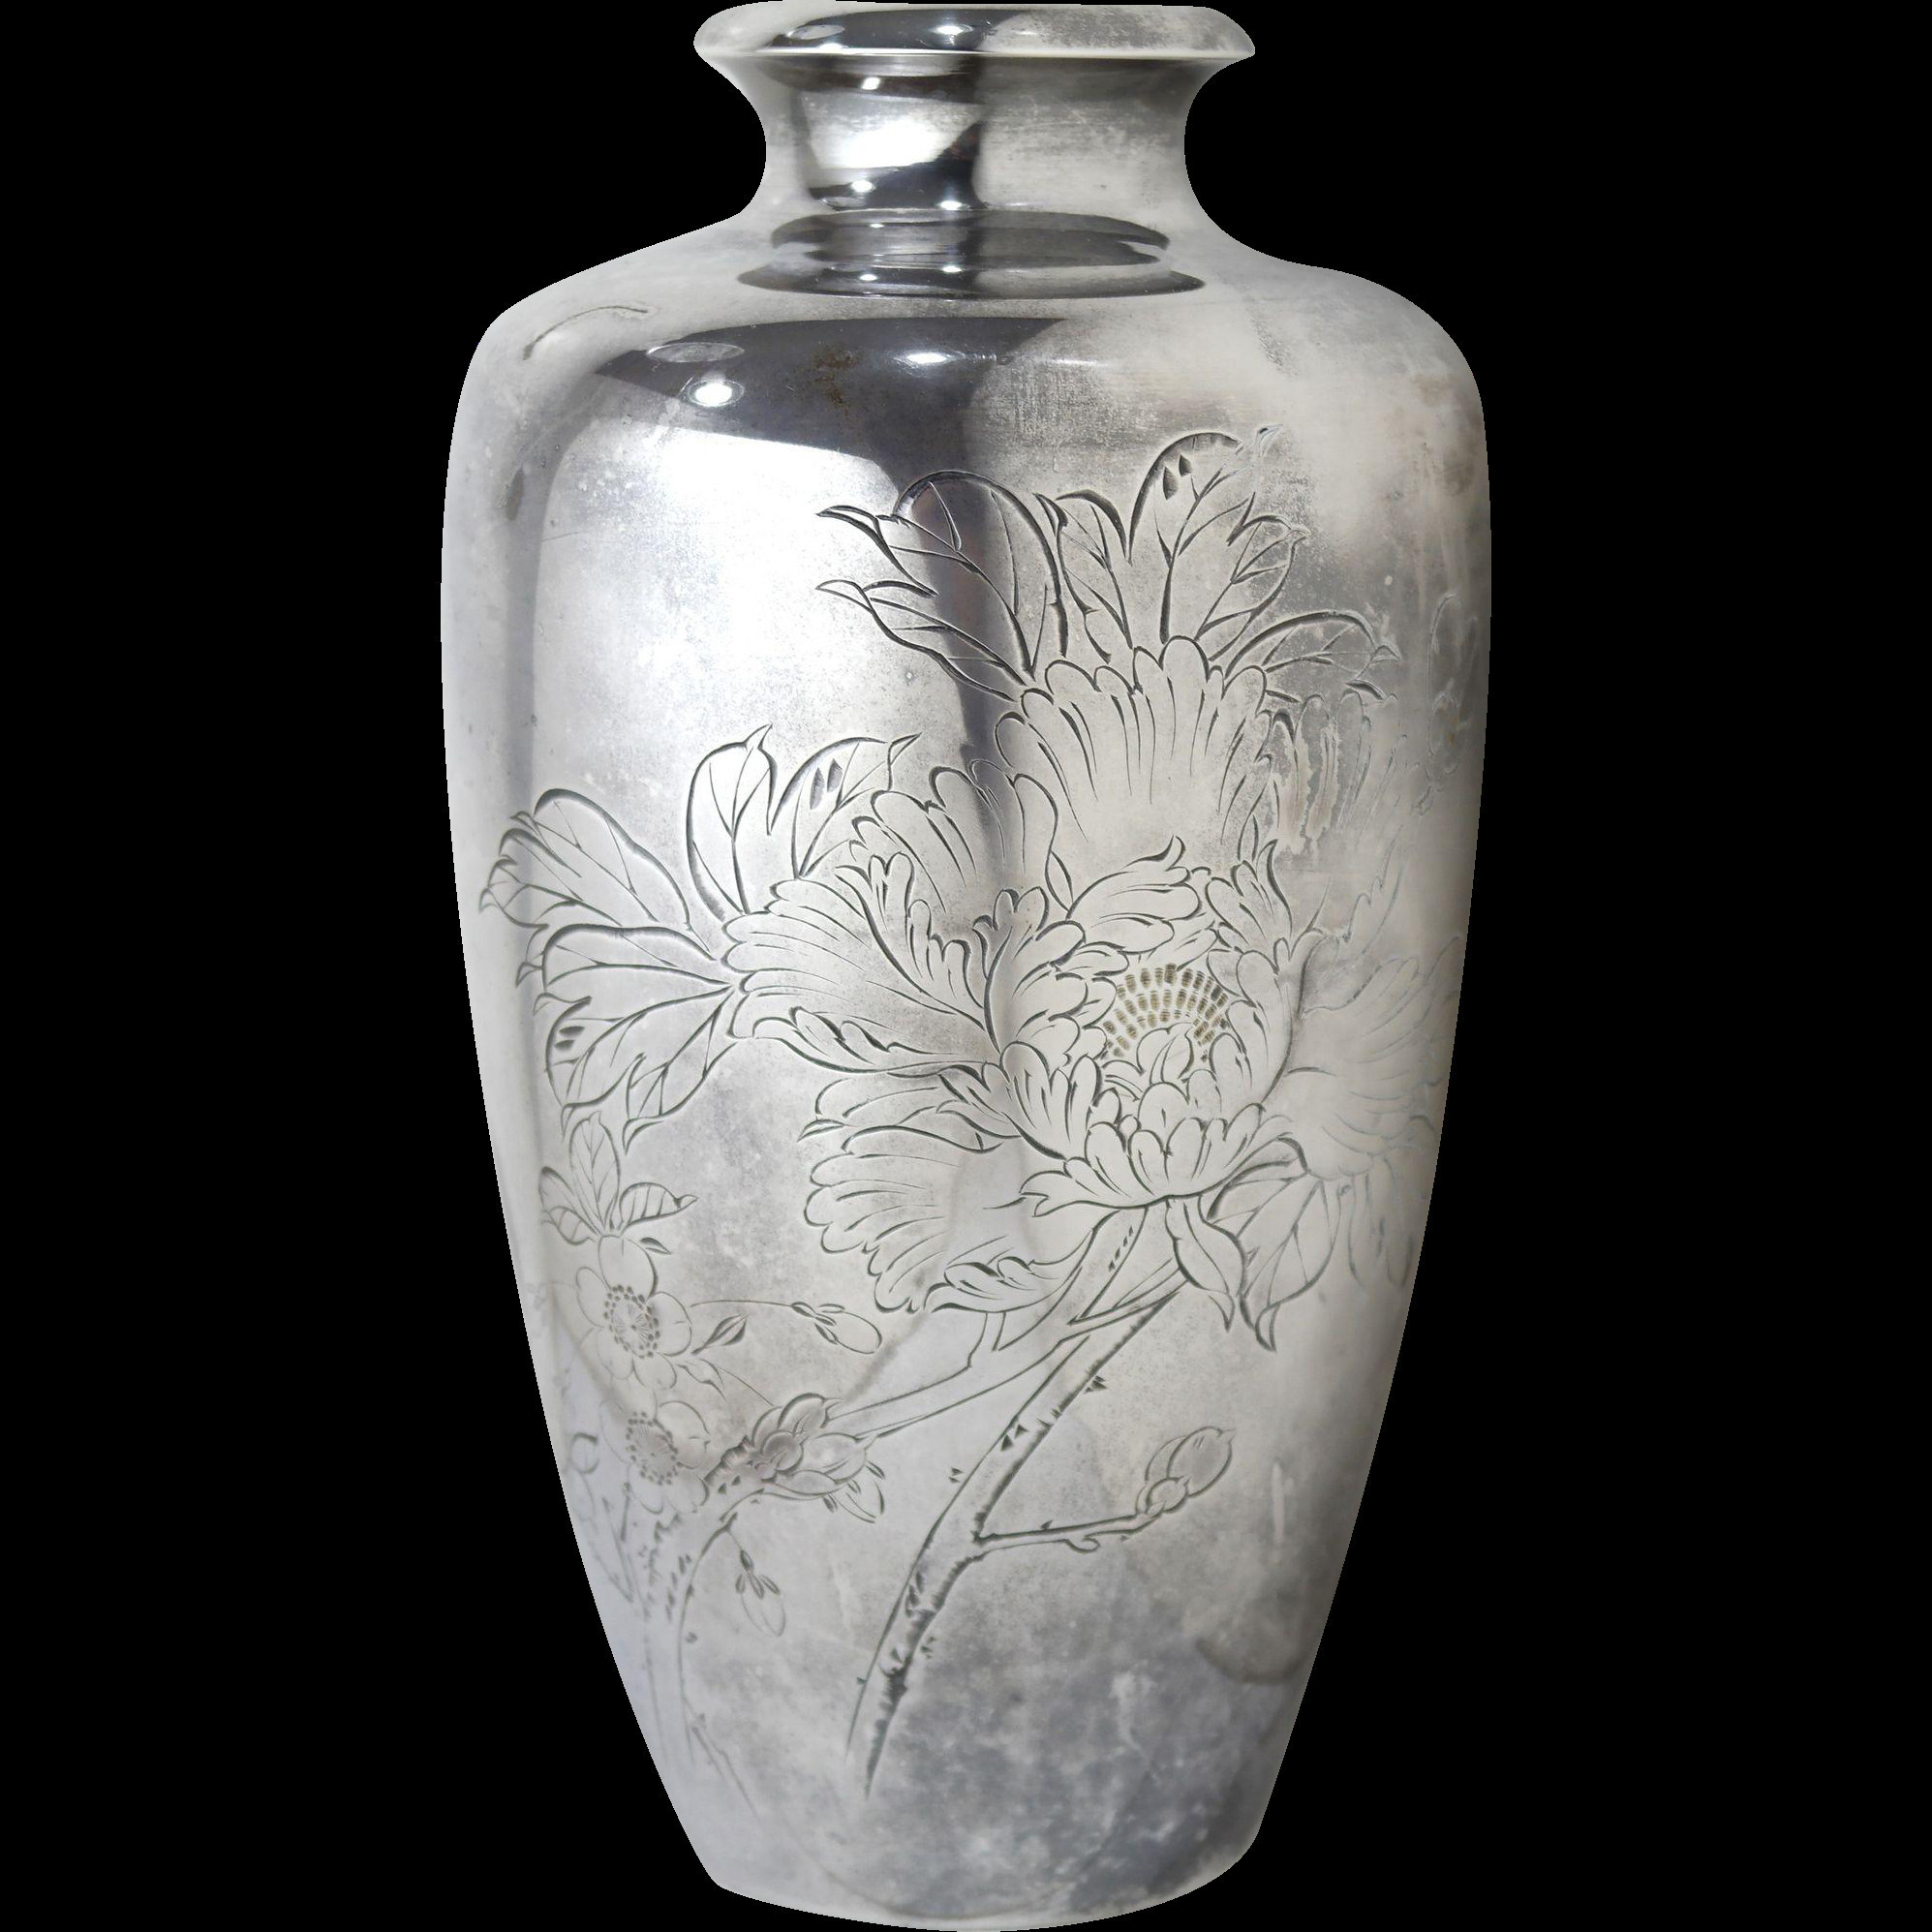 12 Spectacular Mexican Wedding Vase 2021 free download mexican wedding vase of white and silver vase pics xh vases silver vase chinese export 1i 0d throughout white and silver vase pics xh vases silver vase chinese export 1i 0d orchids for weddi